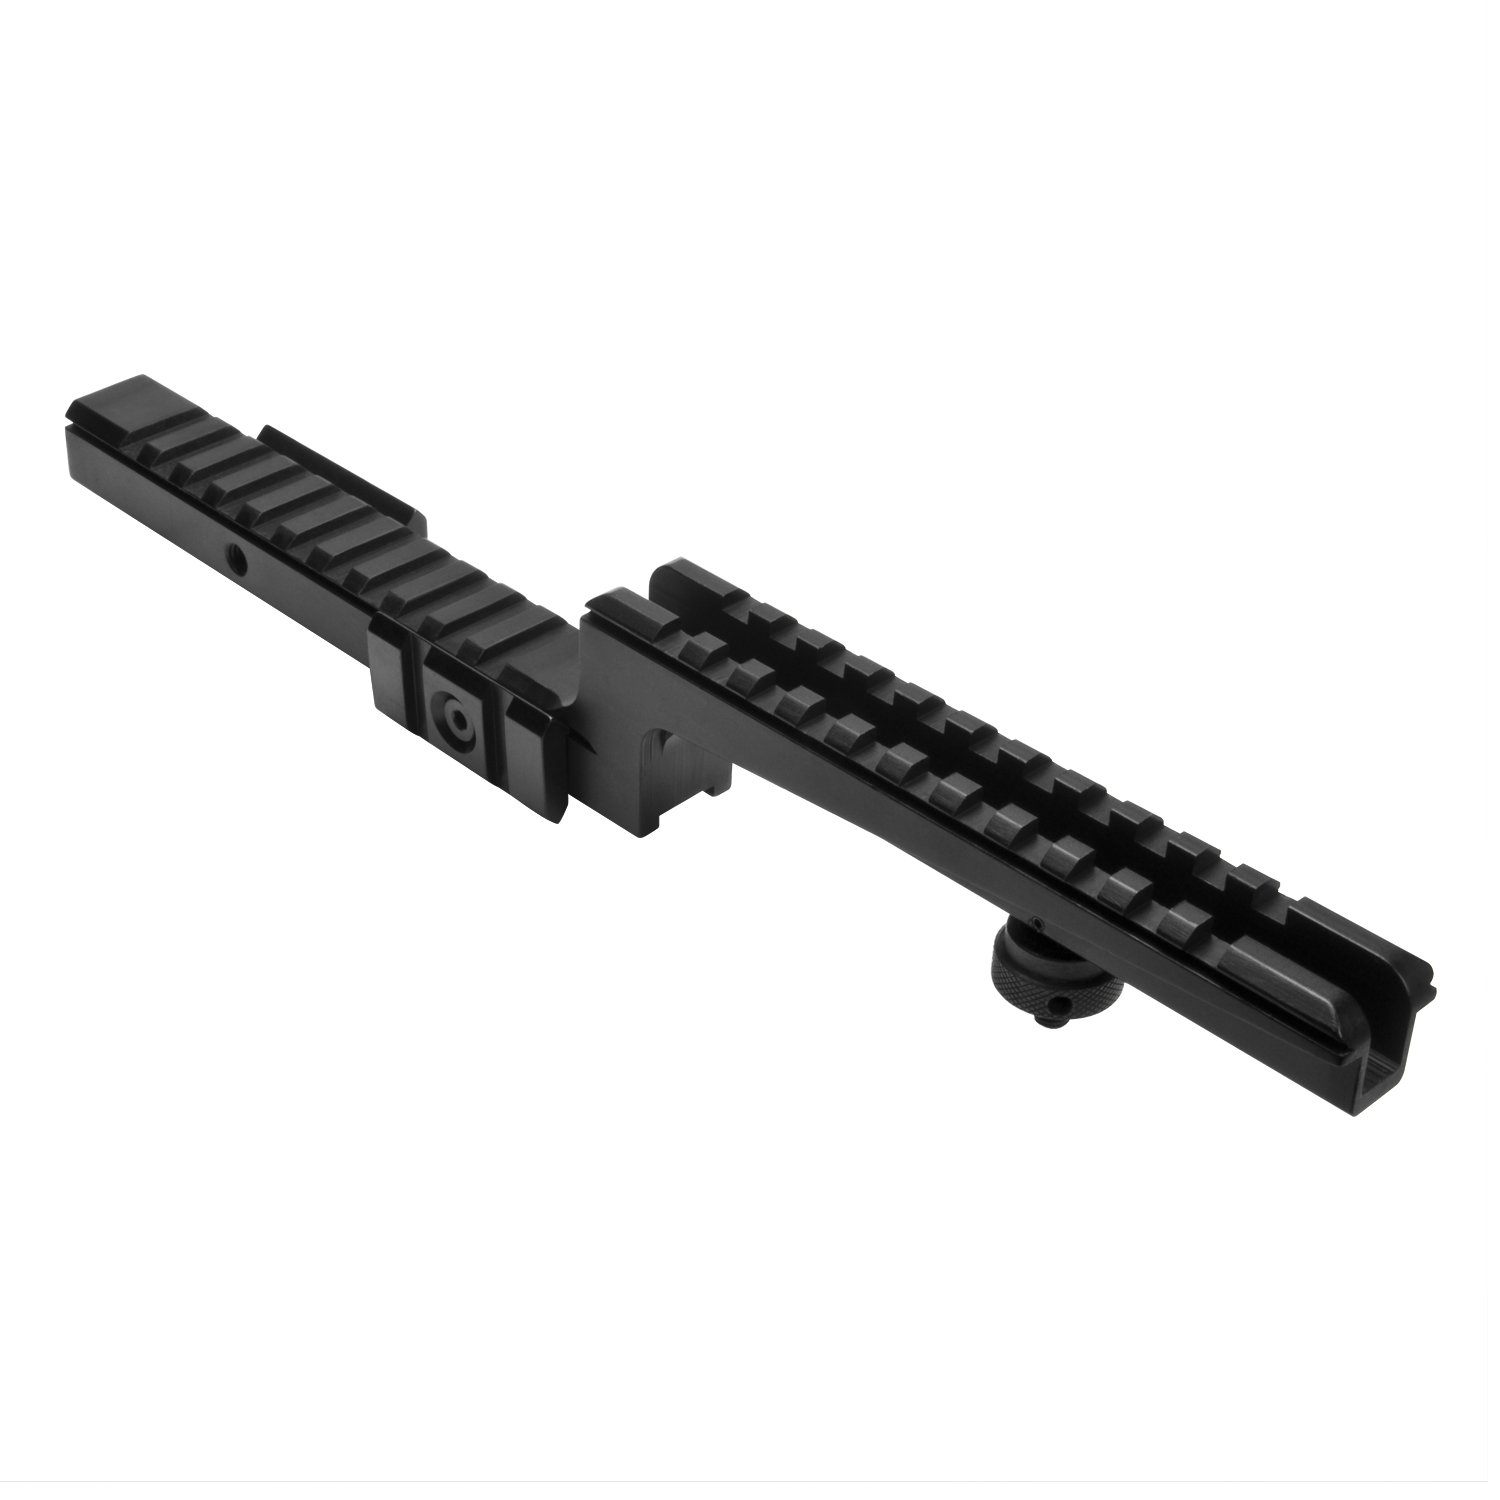 Ncstar Z Type AR15 Carry Handle Mount